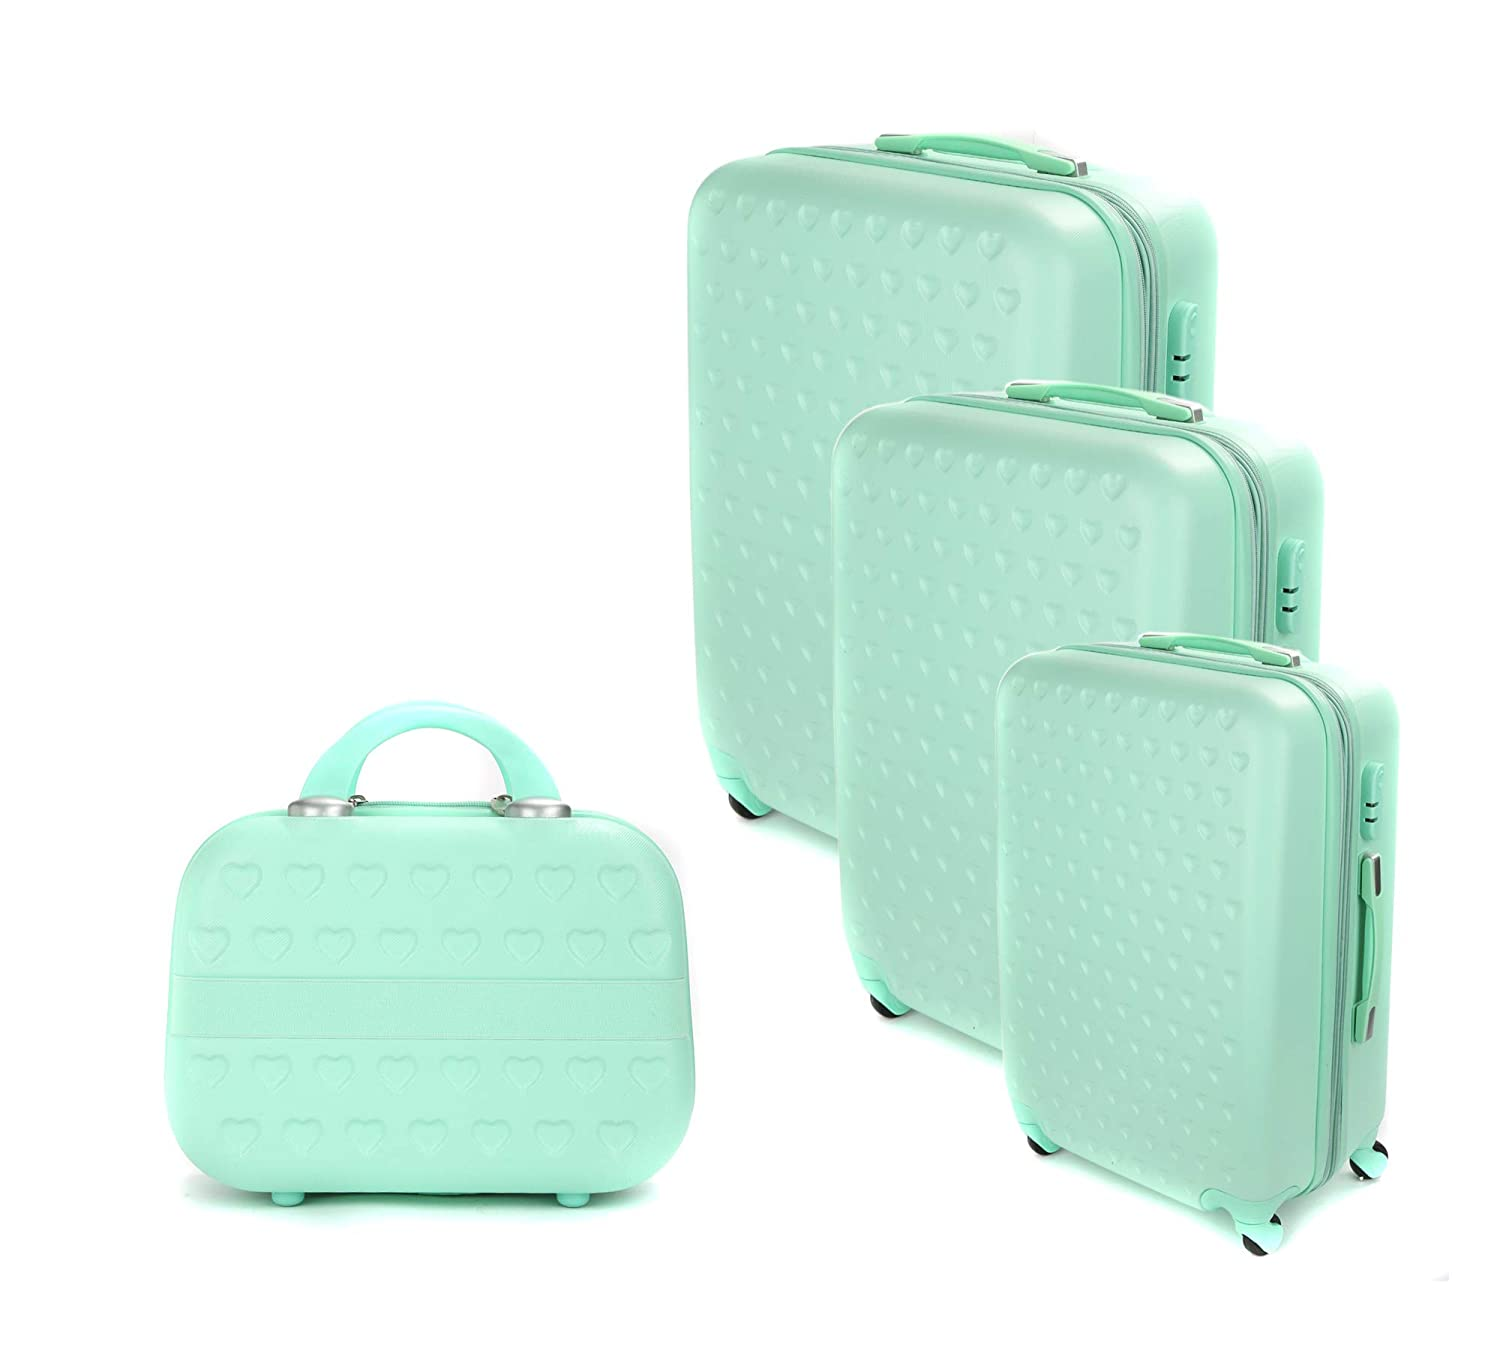 9cdd6c0efe531 Troley Travel Bag by Morano 6690-3Pcs with Beauty Case - Green  Amazon.ae   AinalrabeeG